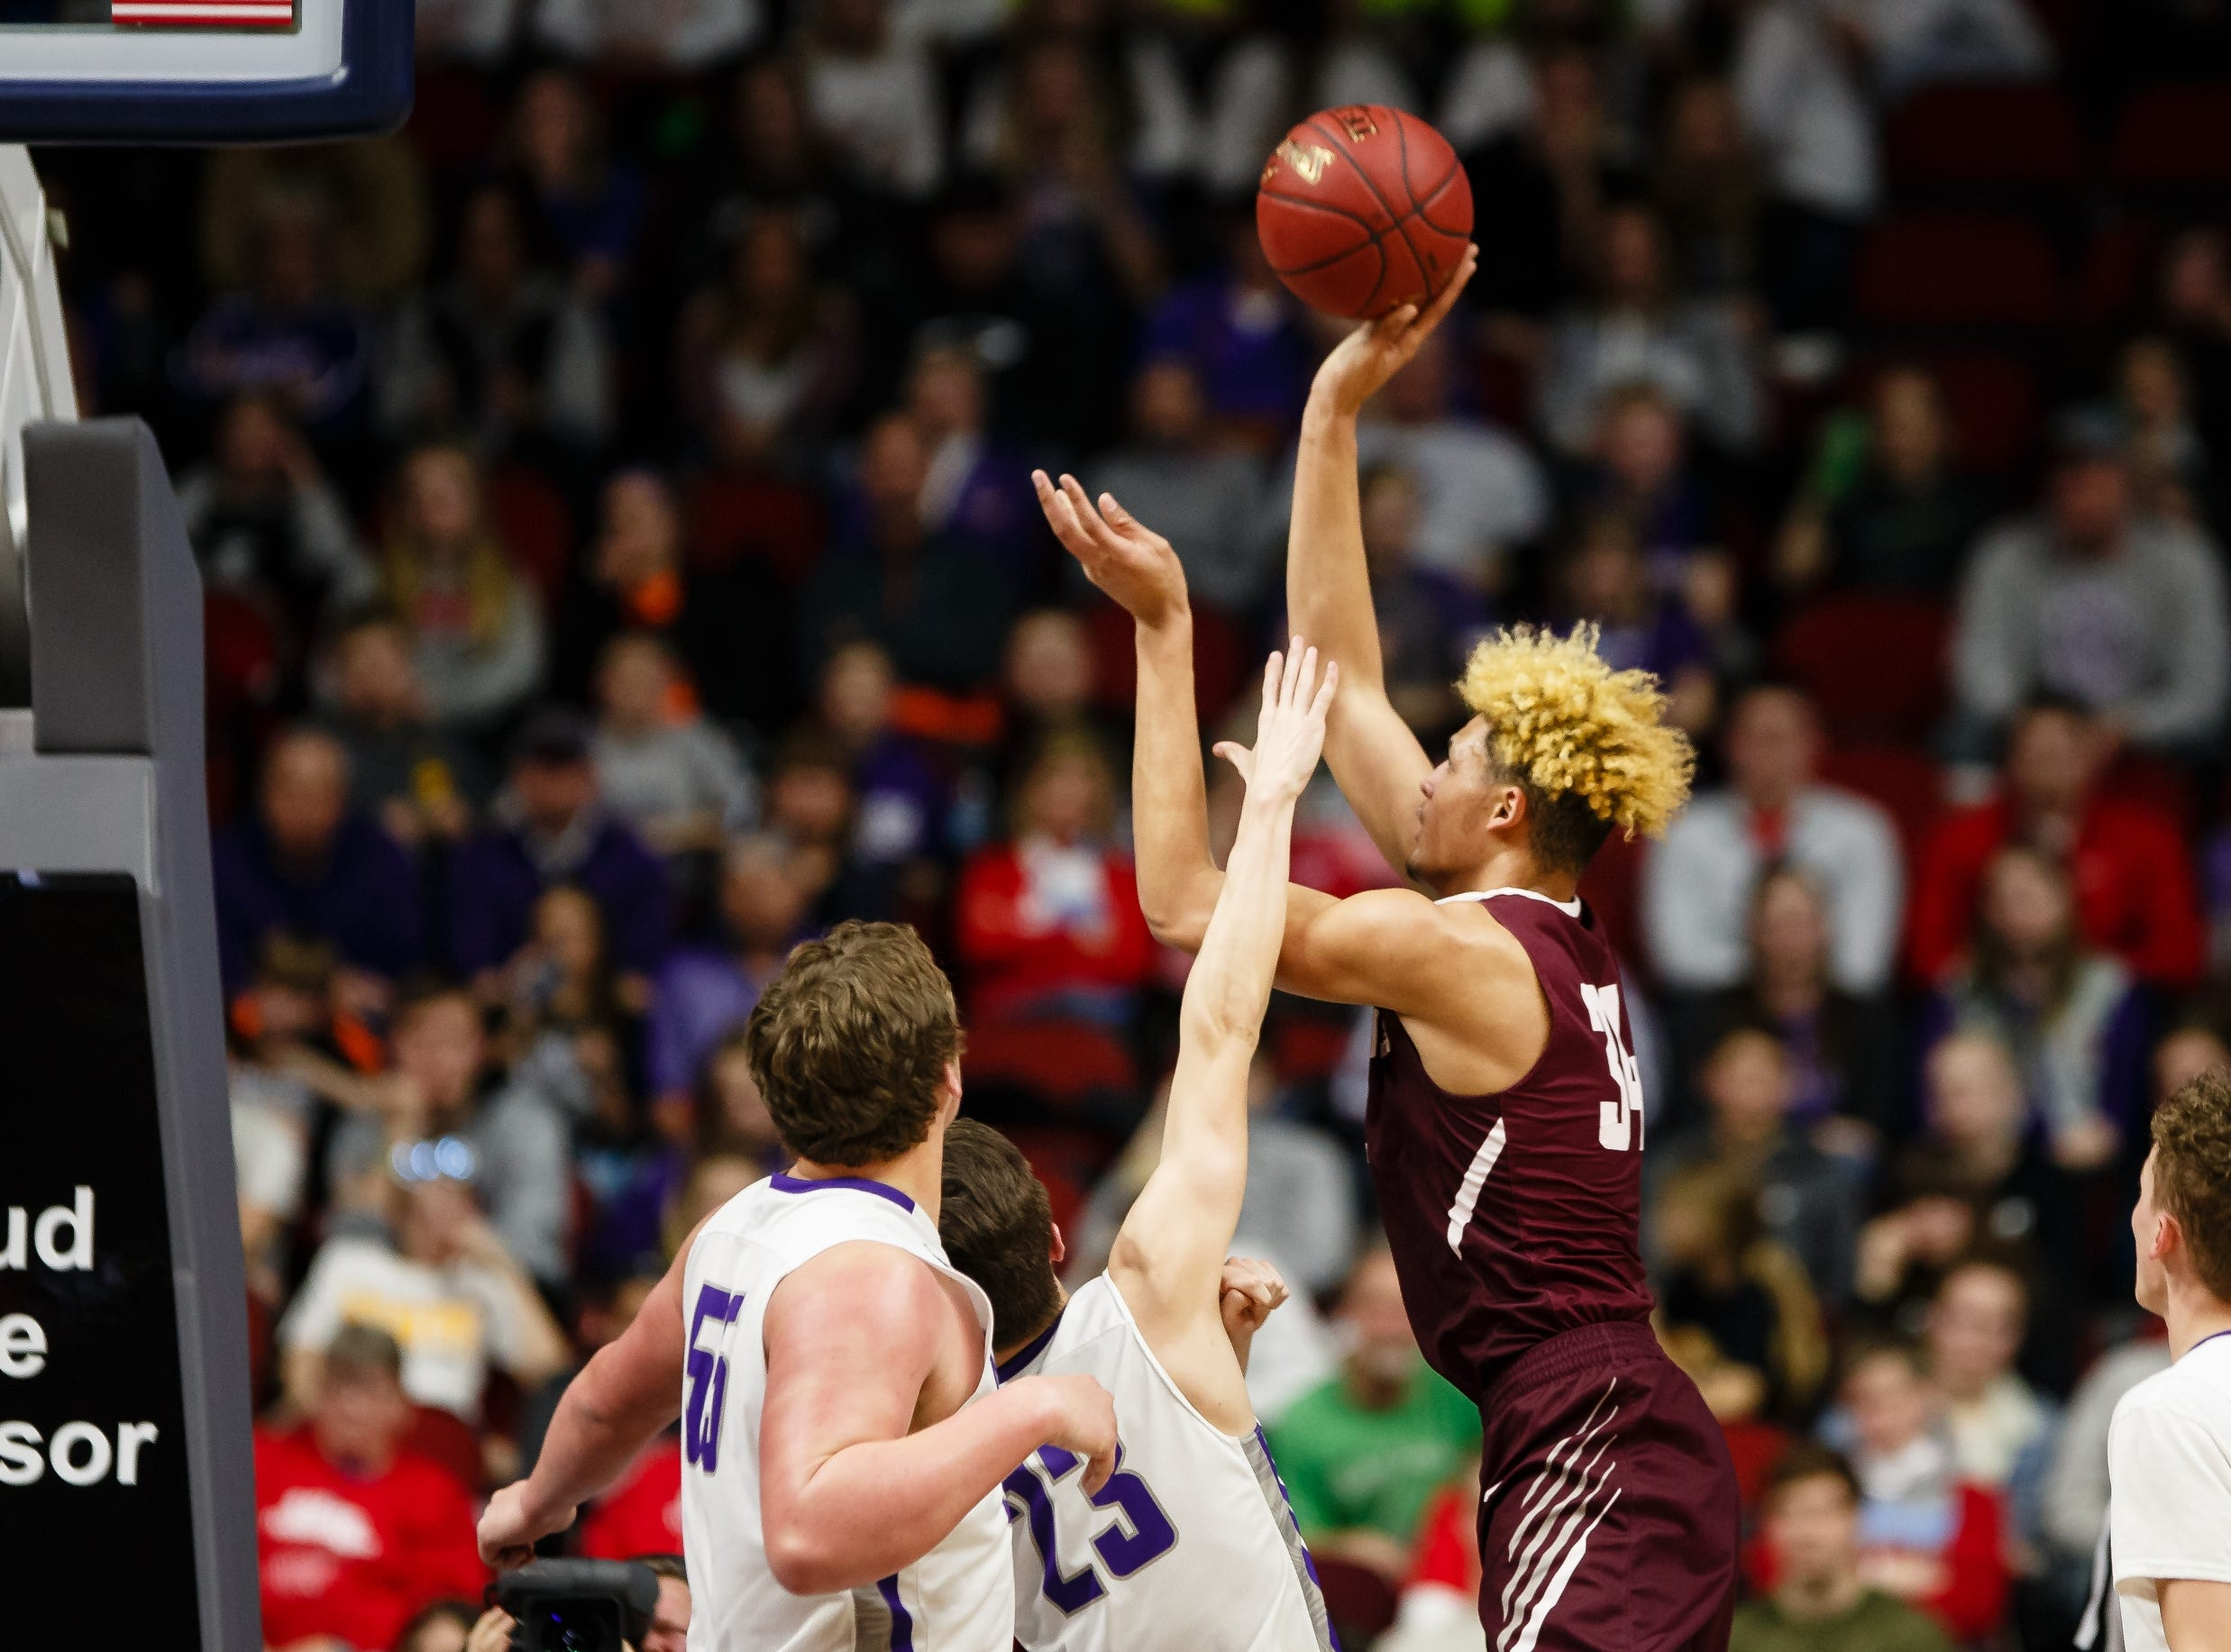 Oskaloosa's Xavier Foster (34) shoots during their boys 3A state basketball championship game on Friday, March 8, 2019 in Des Moines. Oskaloosa would go on to defeat Norwalk 48-44 to win the 3A championship.